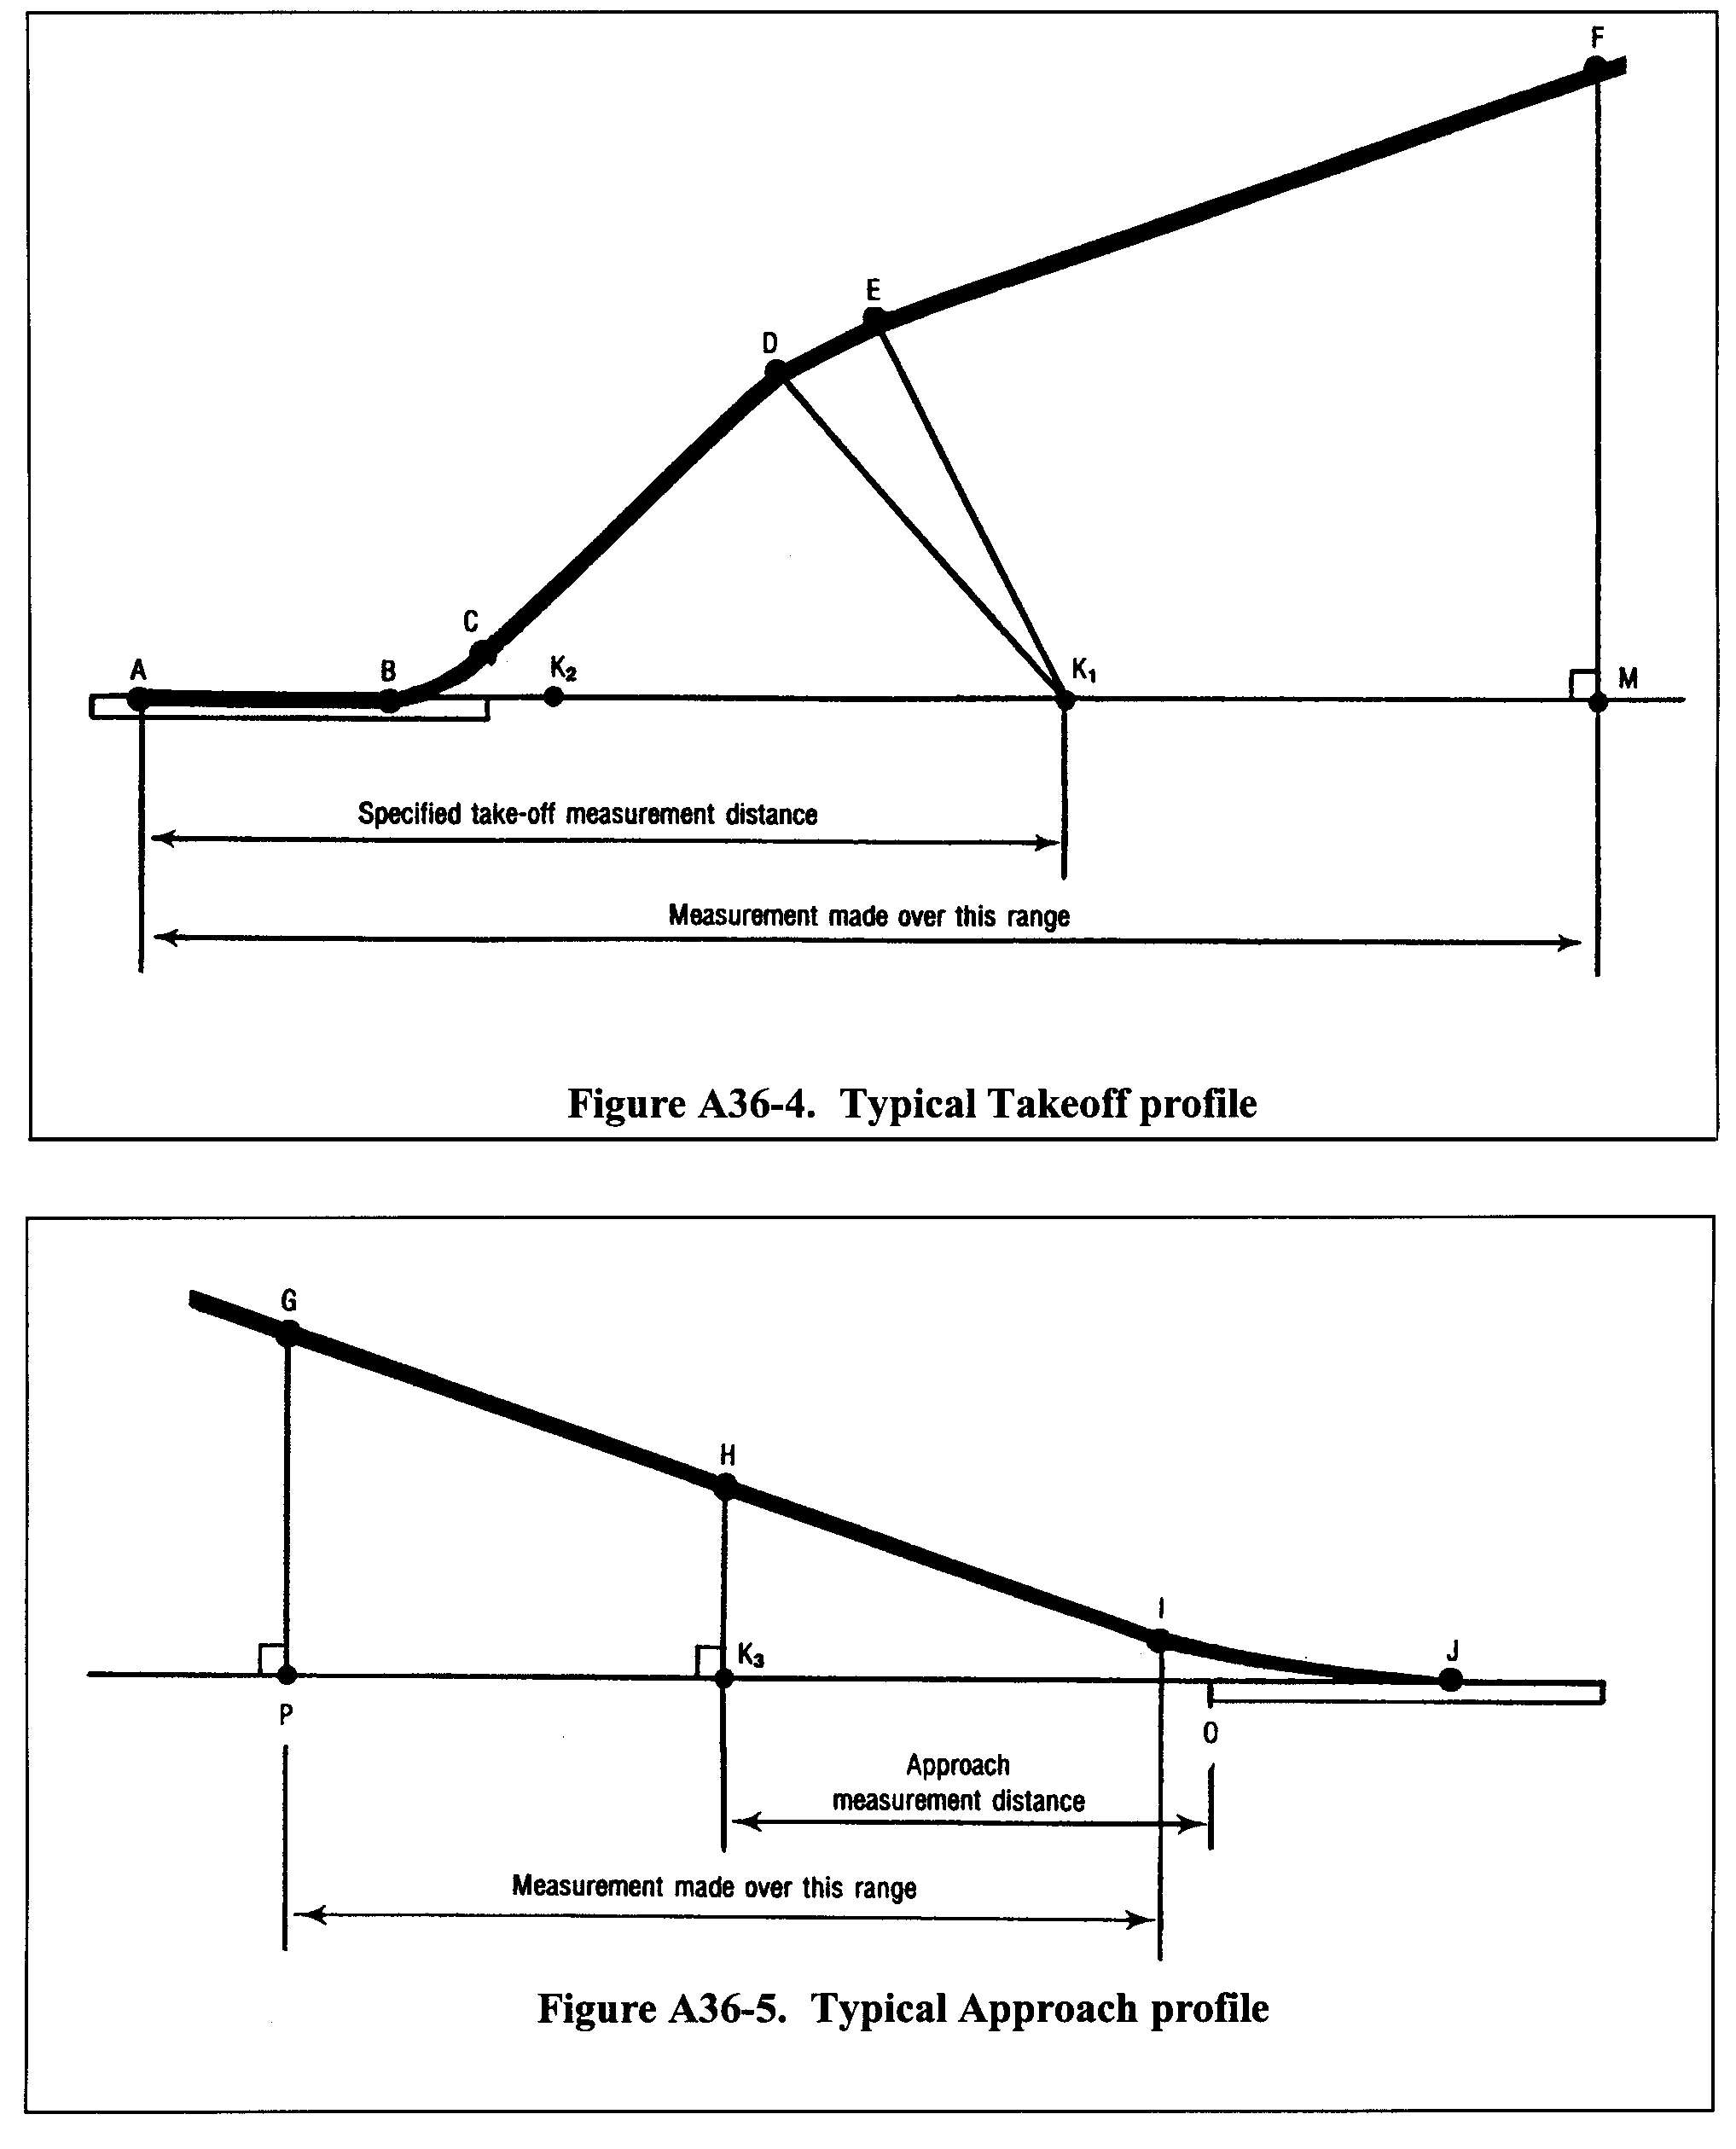 Equation for (c) The distance GI is the distance over which the airplane position is measured and synchronized with the noise measurements, as required by section A36.2.3.2 of this part.